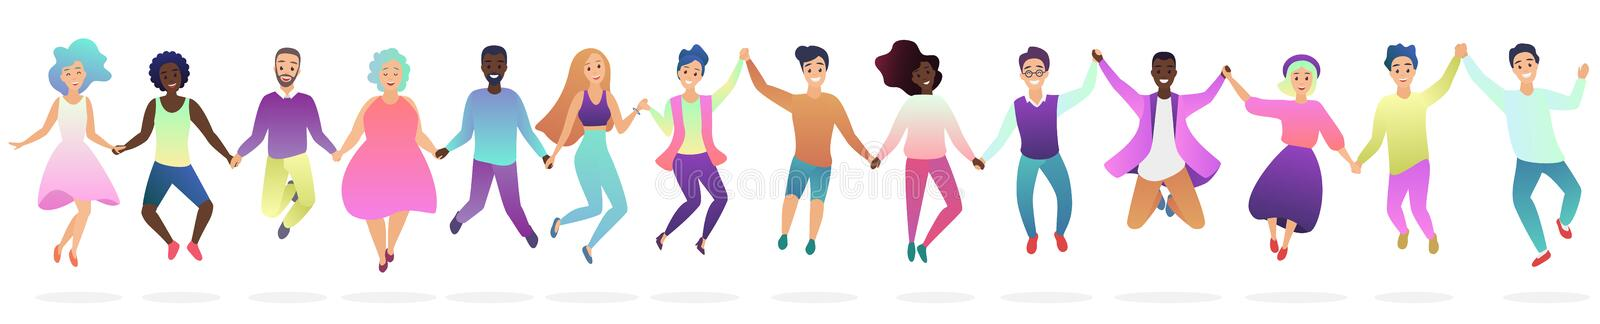 People holding hands in a jumping together silhouette vector illustration. stock illustration